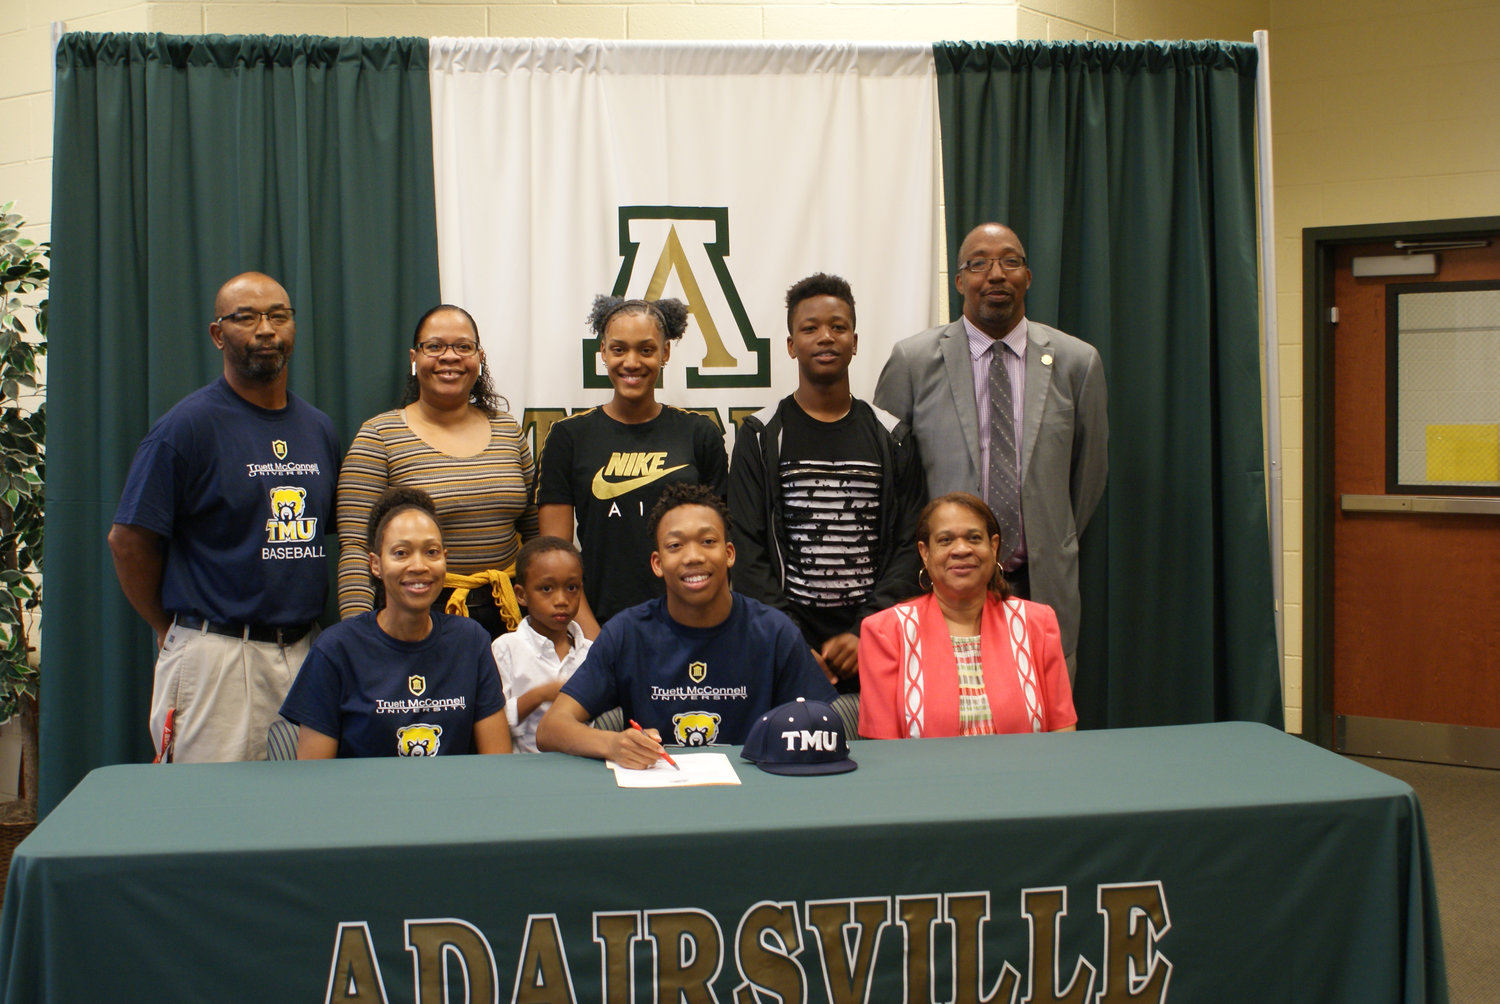 Recent Adairsville High graduate B.J. Roper signed to play baseball at Truett McConnell. On hand for the signing ceremony were, from left, front row: Tamara Roper, mother; Trey Roper, brother; Donna Watkins, grandmother; back row, Billy Roper, father and AHS head baseball coach; Kisha Slaughter, aunt; Justyce Moore, cousin; Chris Roper, brother; and Sammie Roper, uncle.